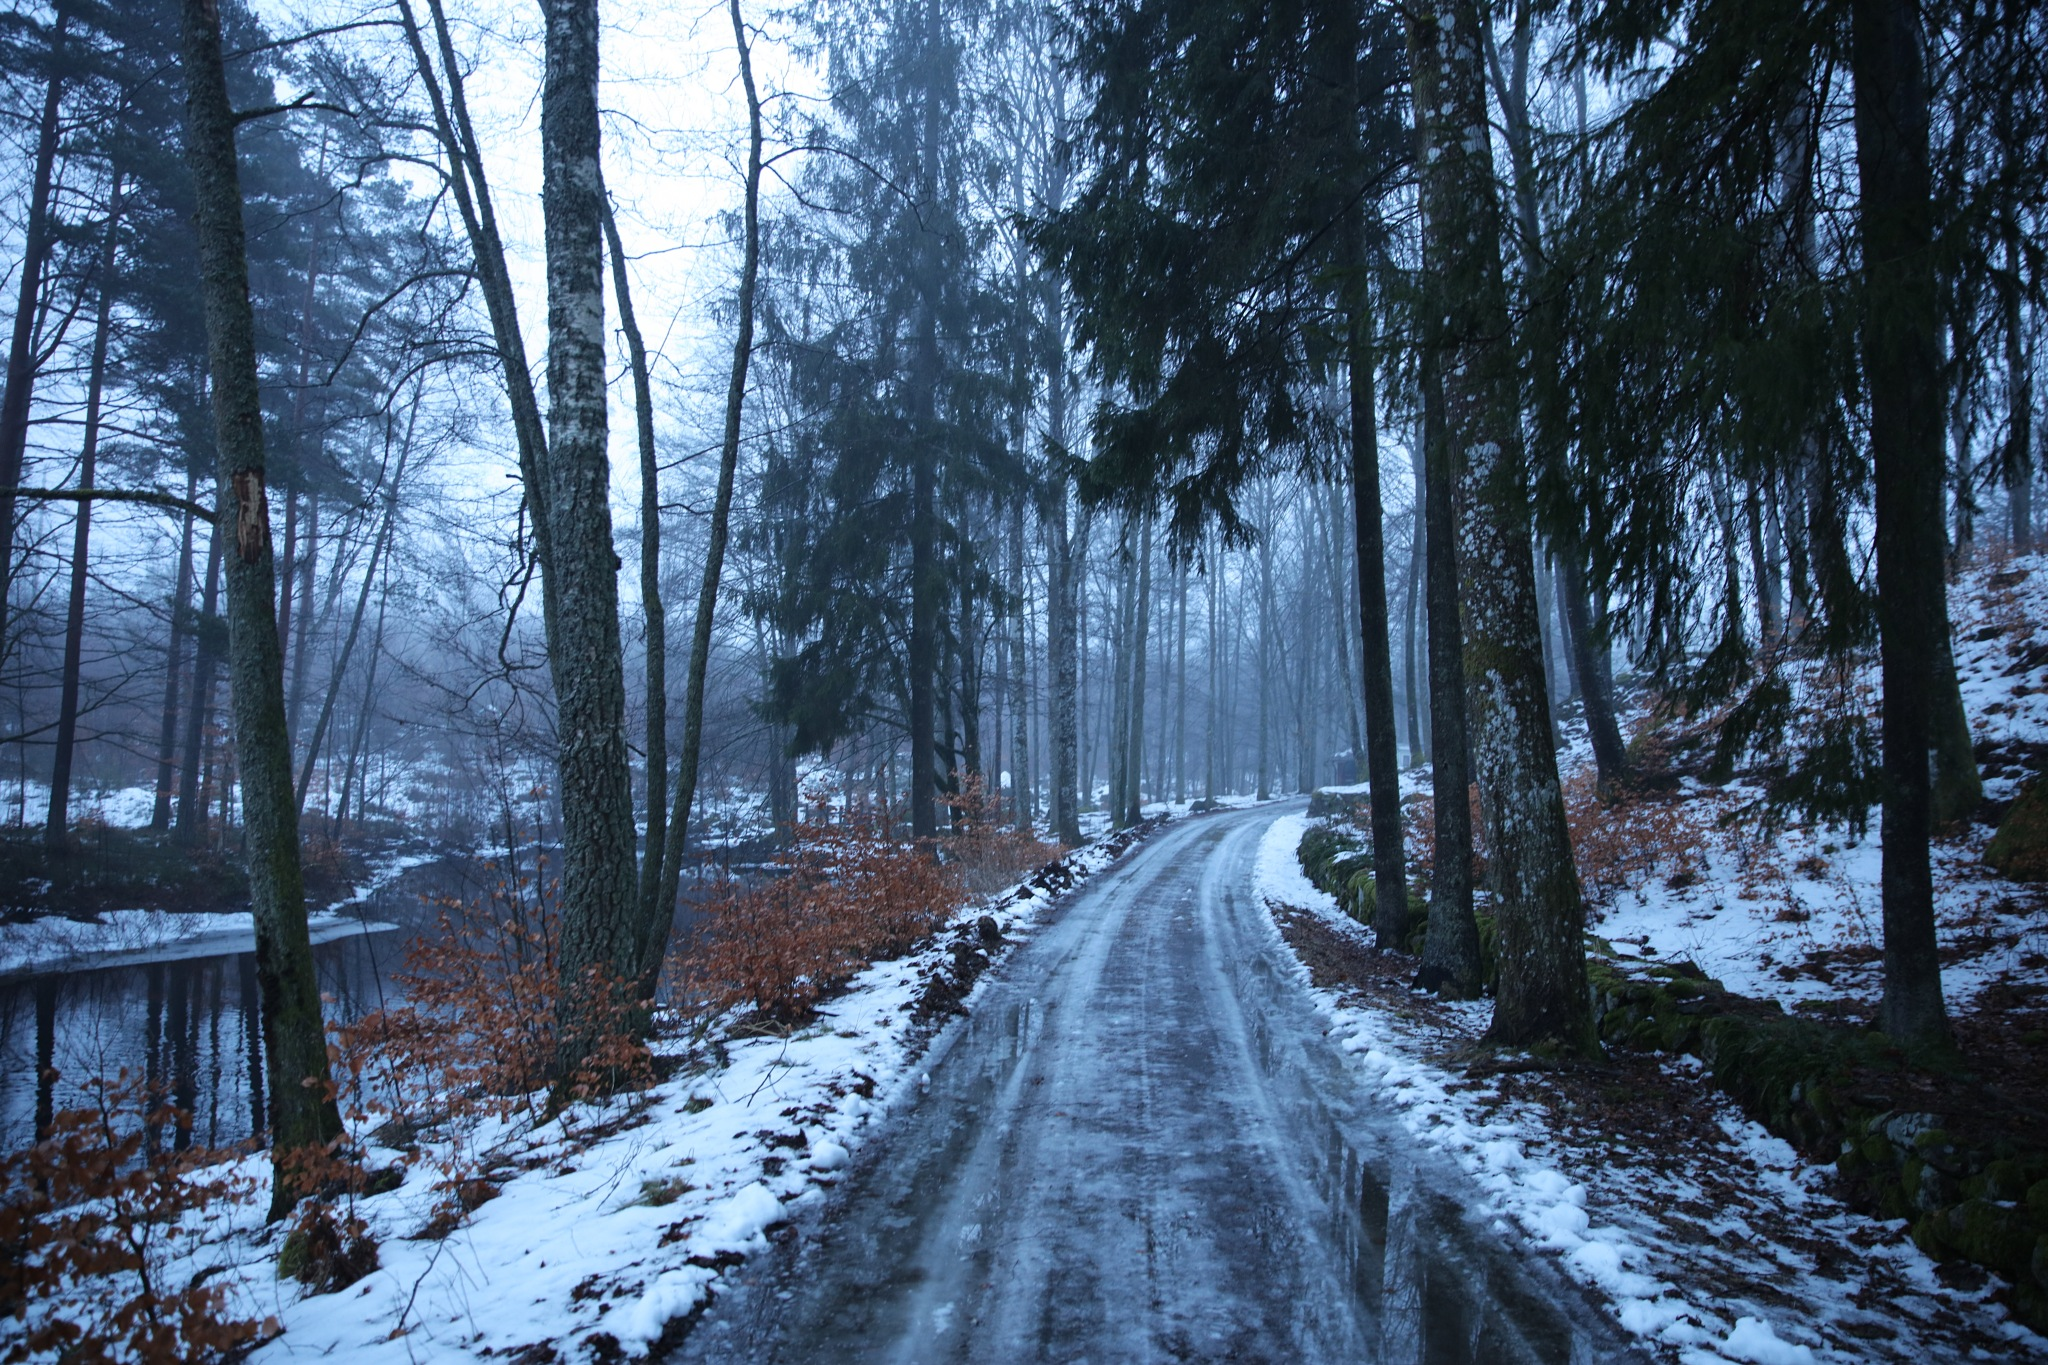 Rain after snow, road is wet and slippery by peterliendeborg